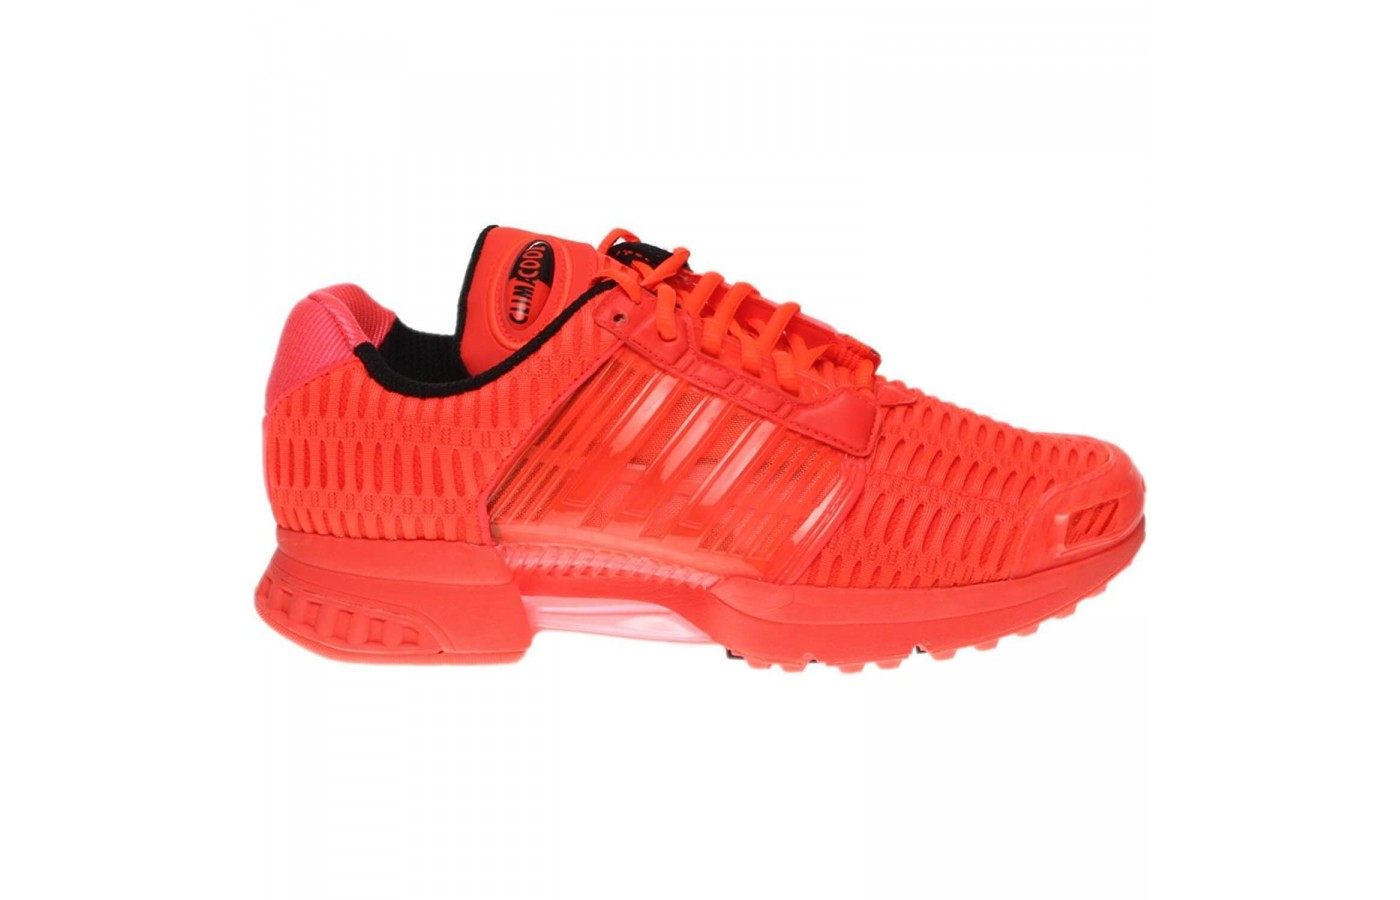 Great side view of Adidas ClimaCool 1